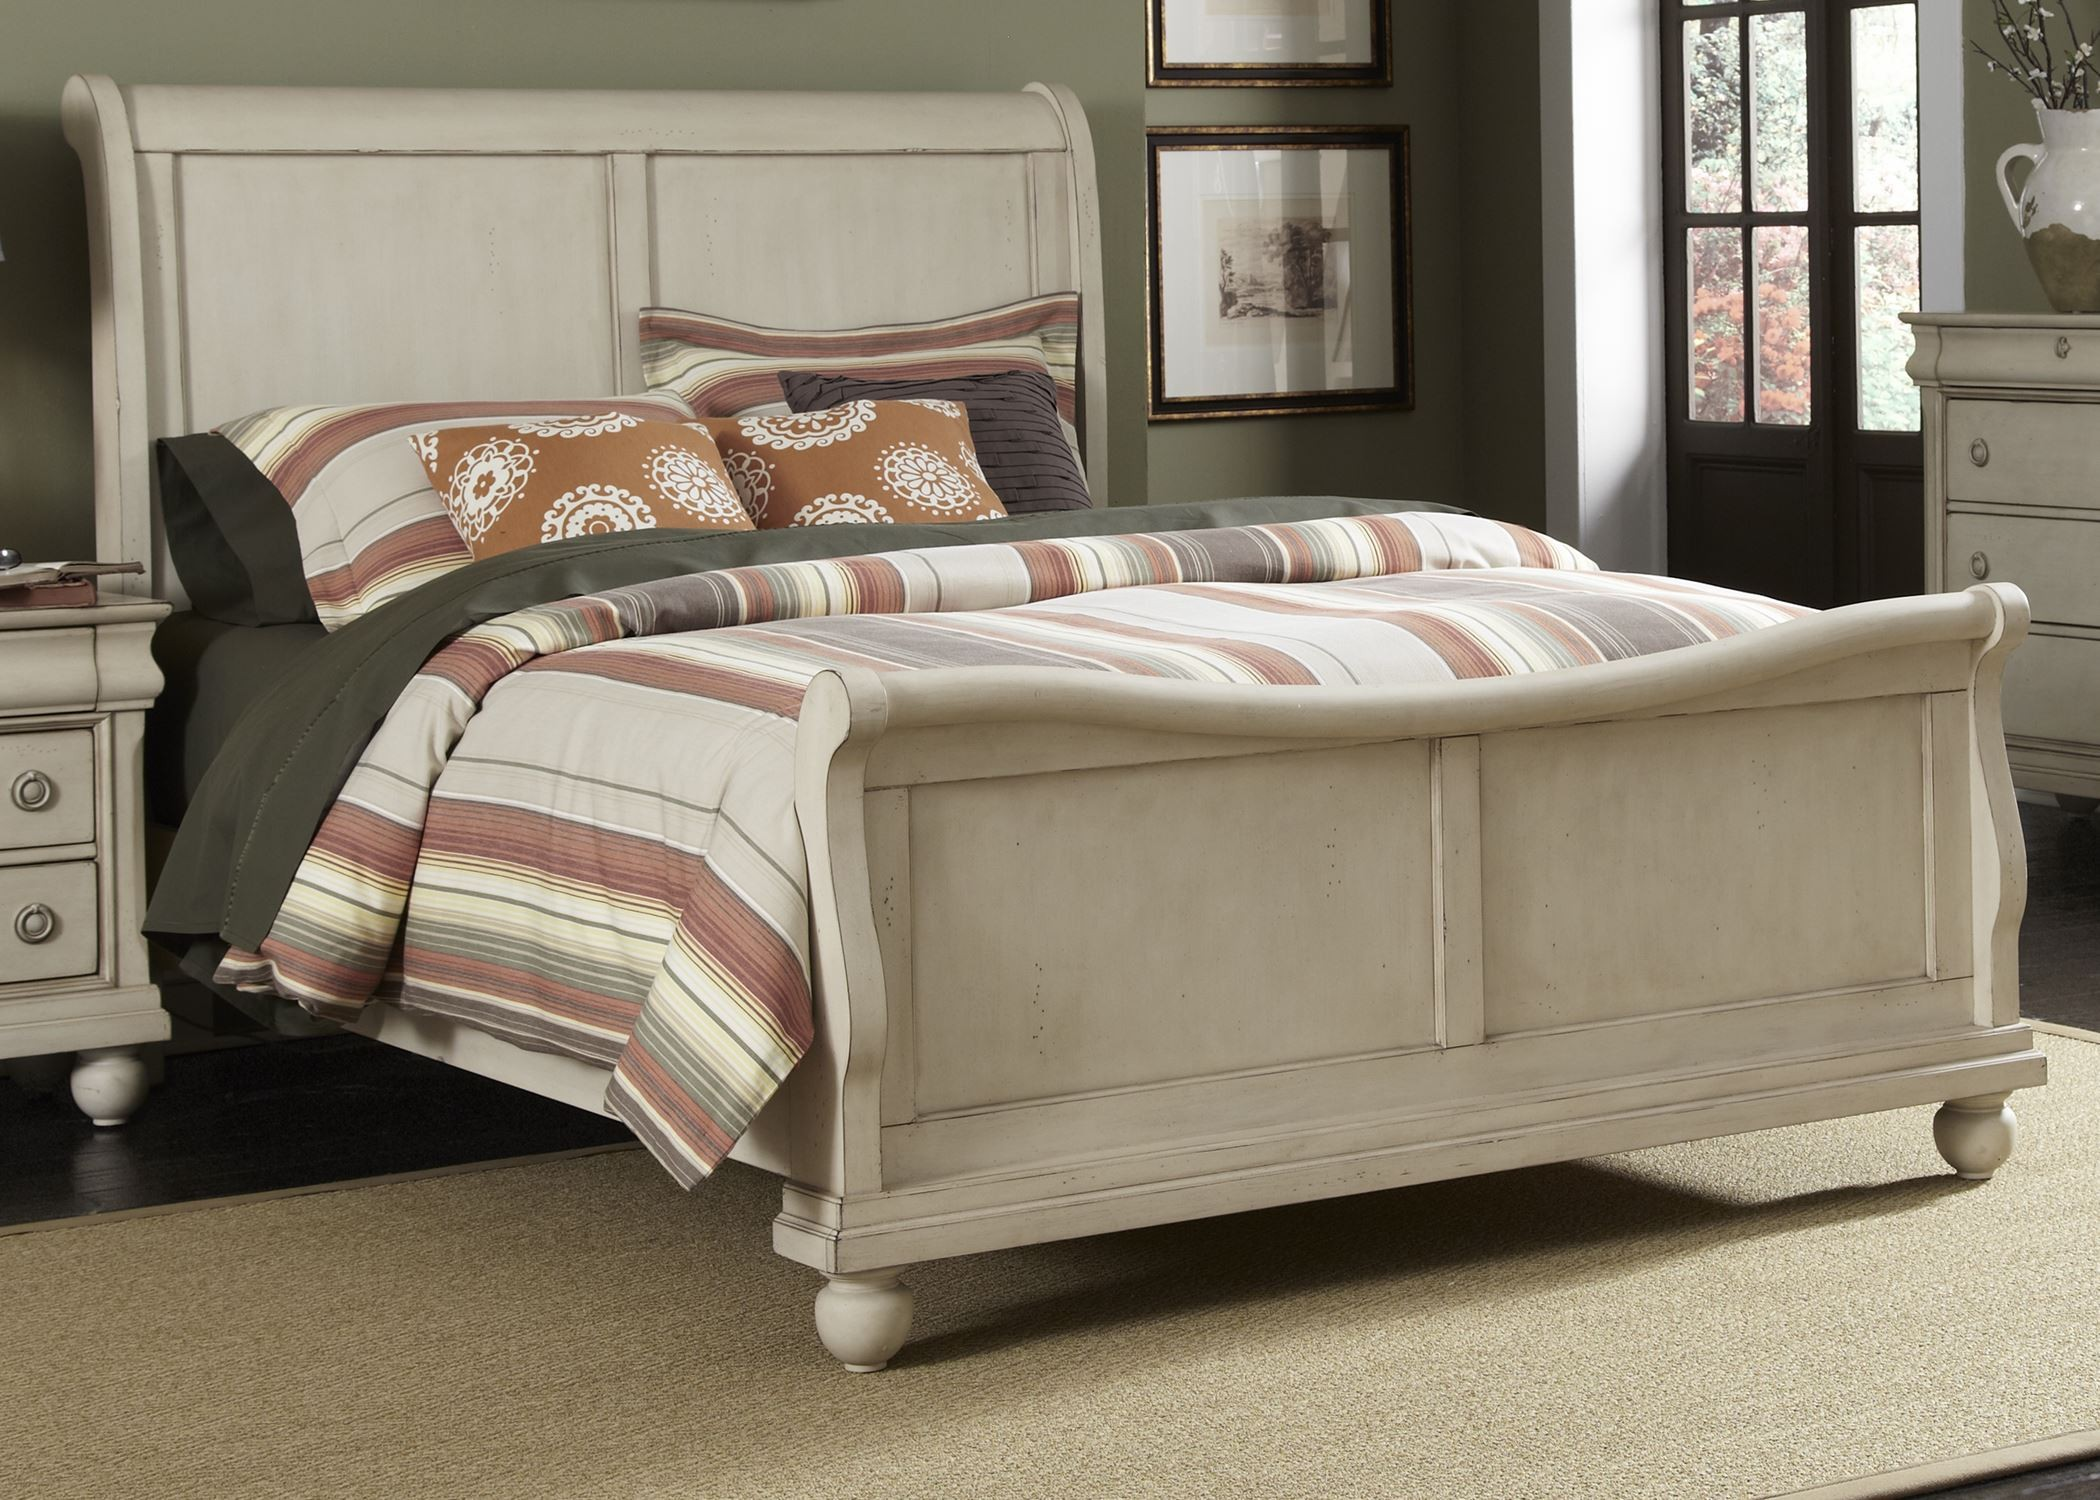 Rustic Traditions II King Sleigh Bed from Liberty (689-BR-KSL) : Coleman Furniture